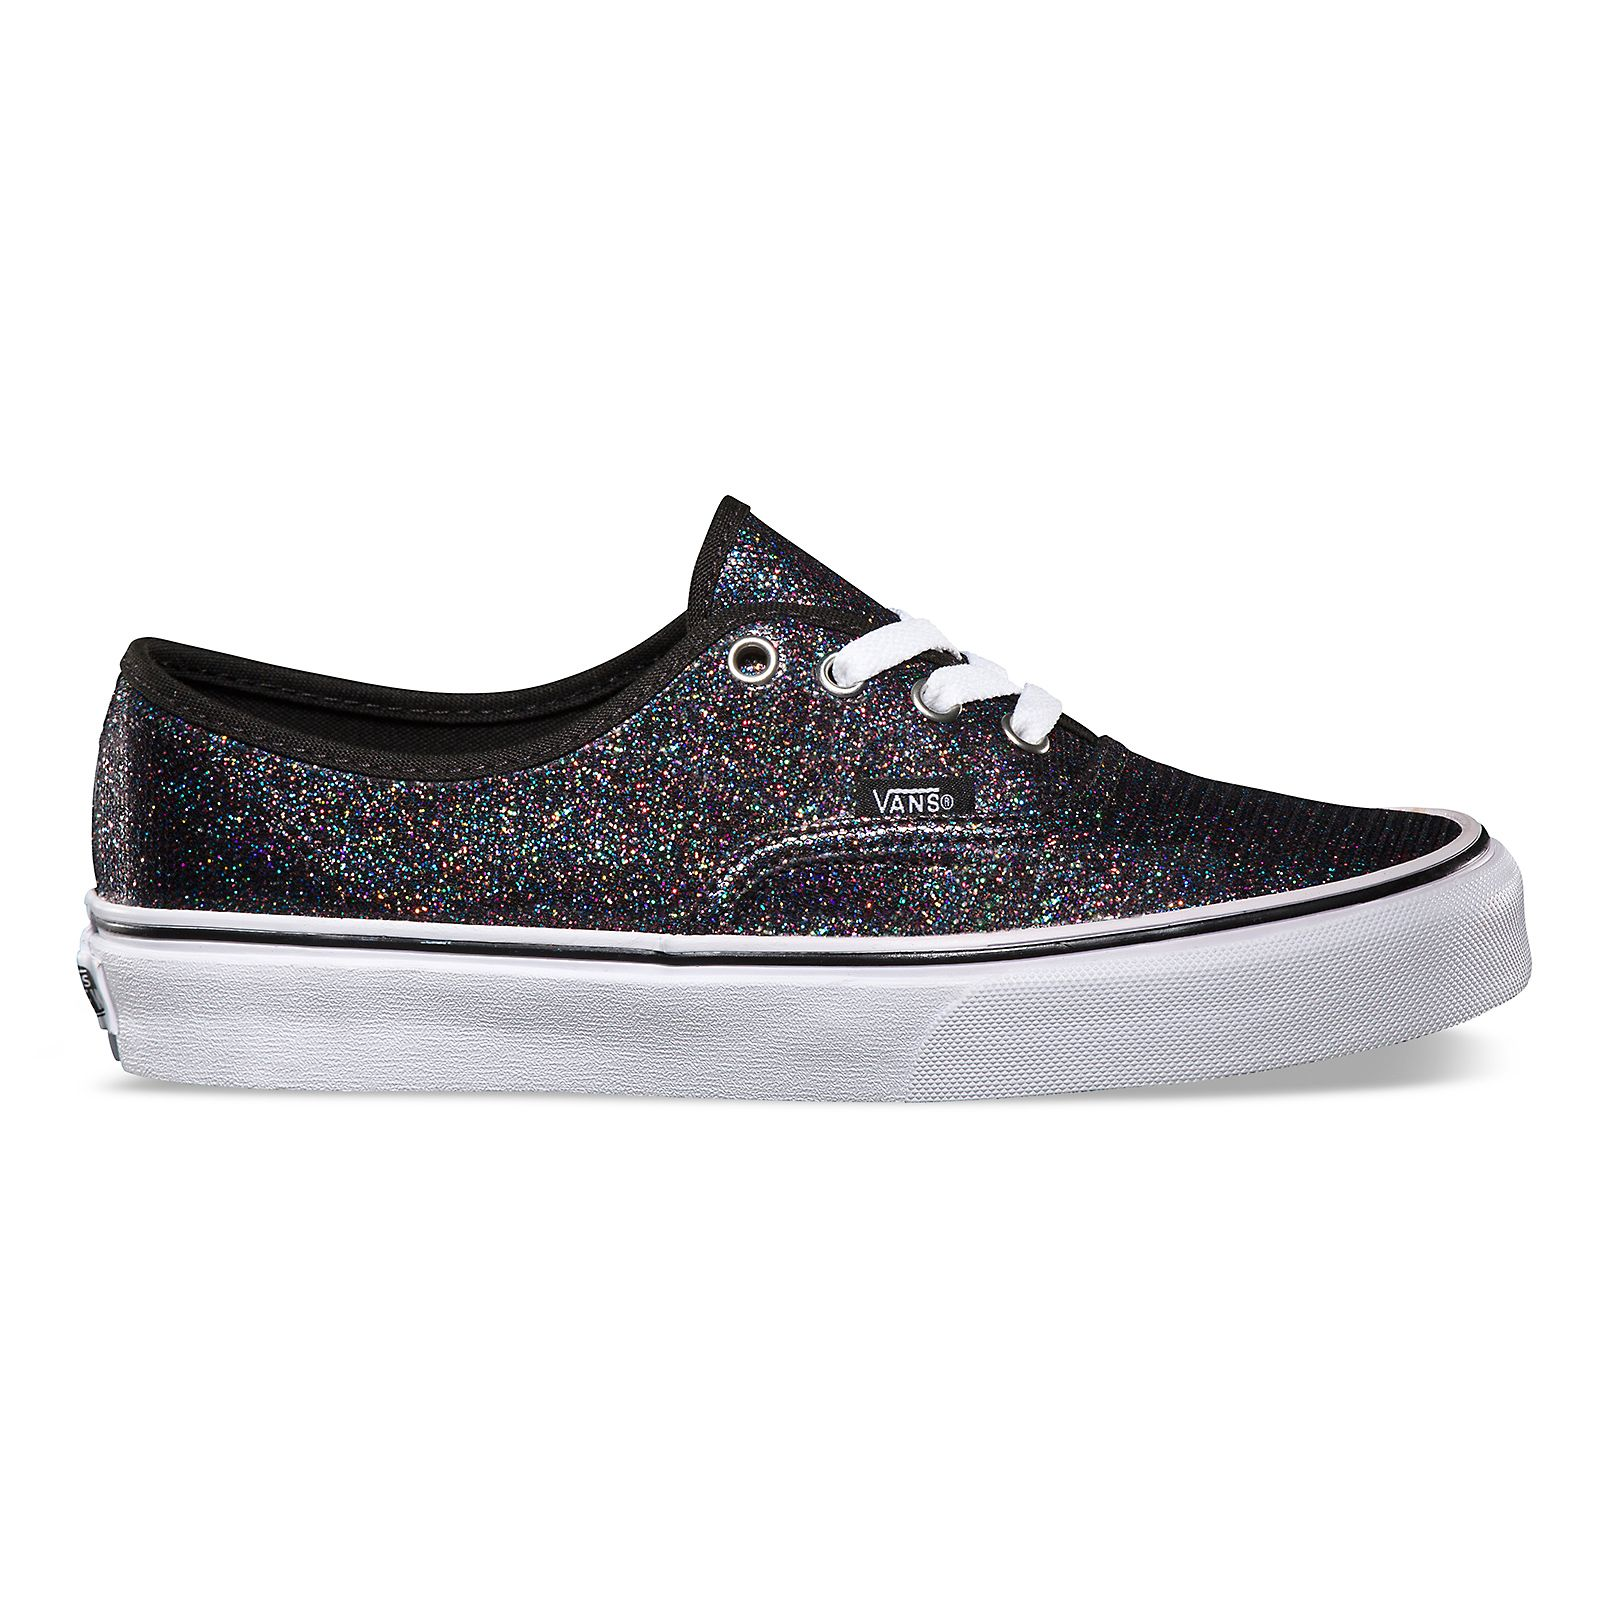 Vans Shades of Black Diamond Product: Iridescent Glitter